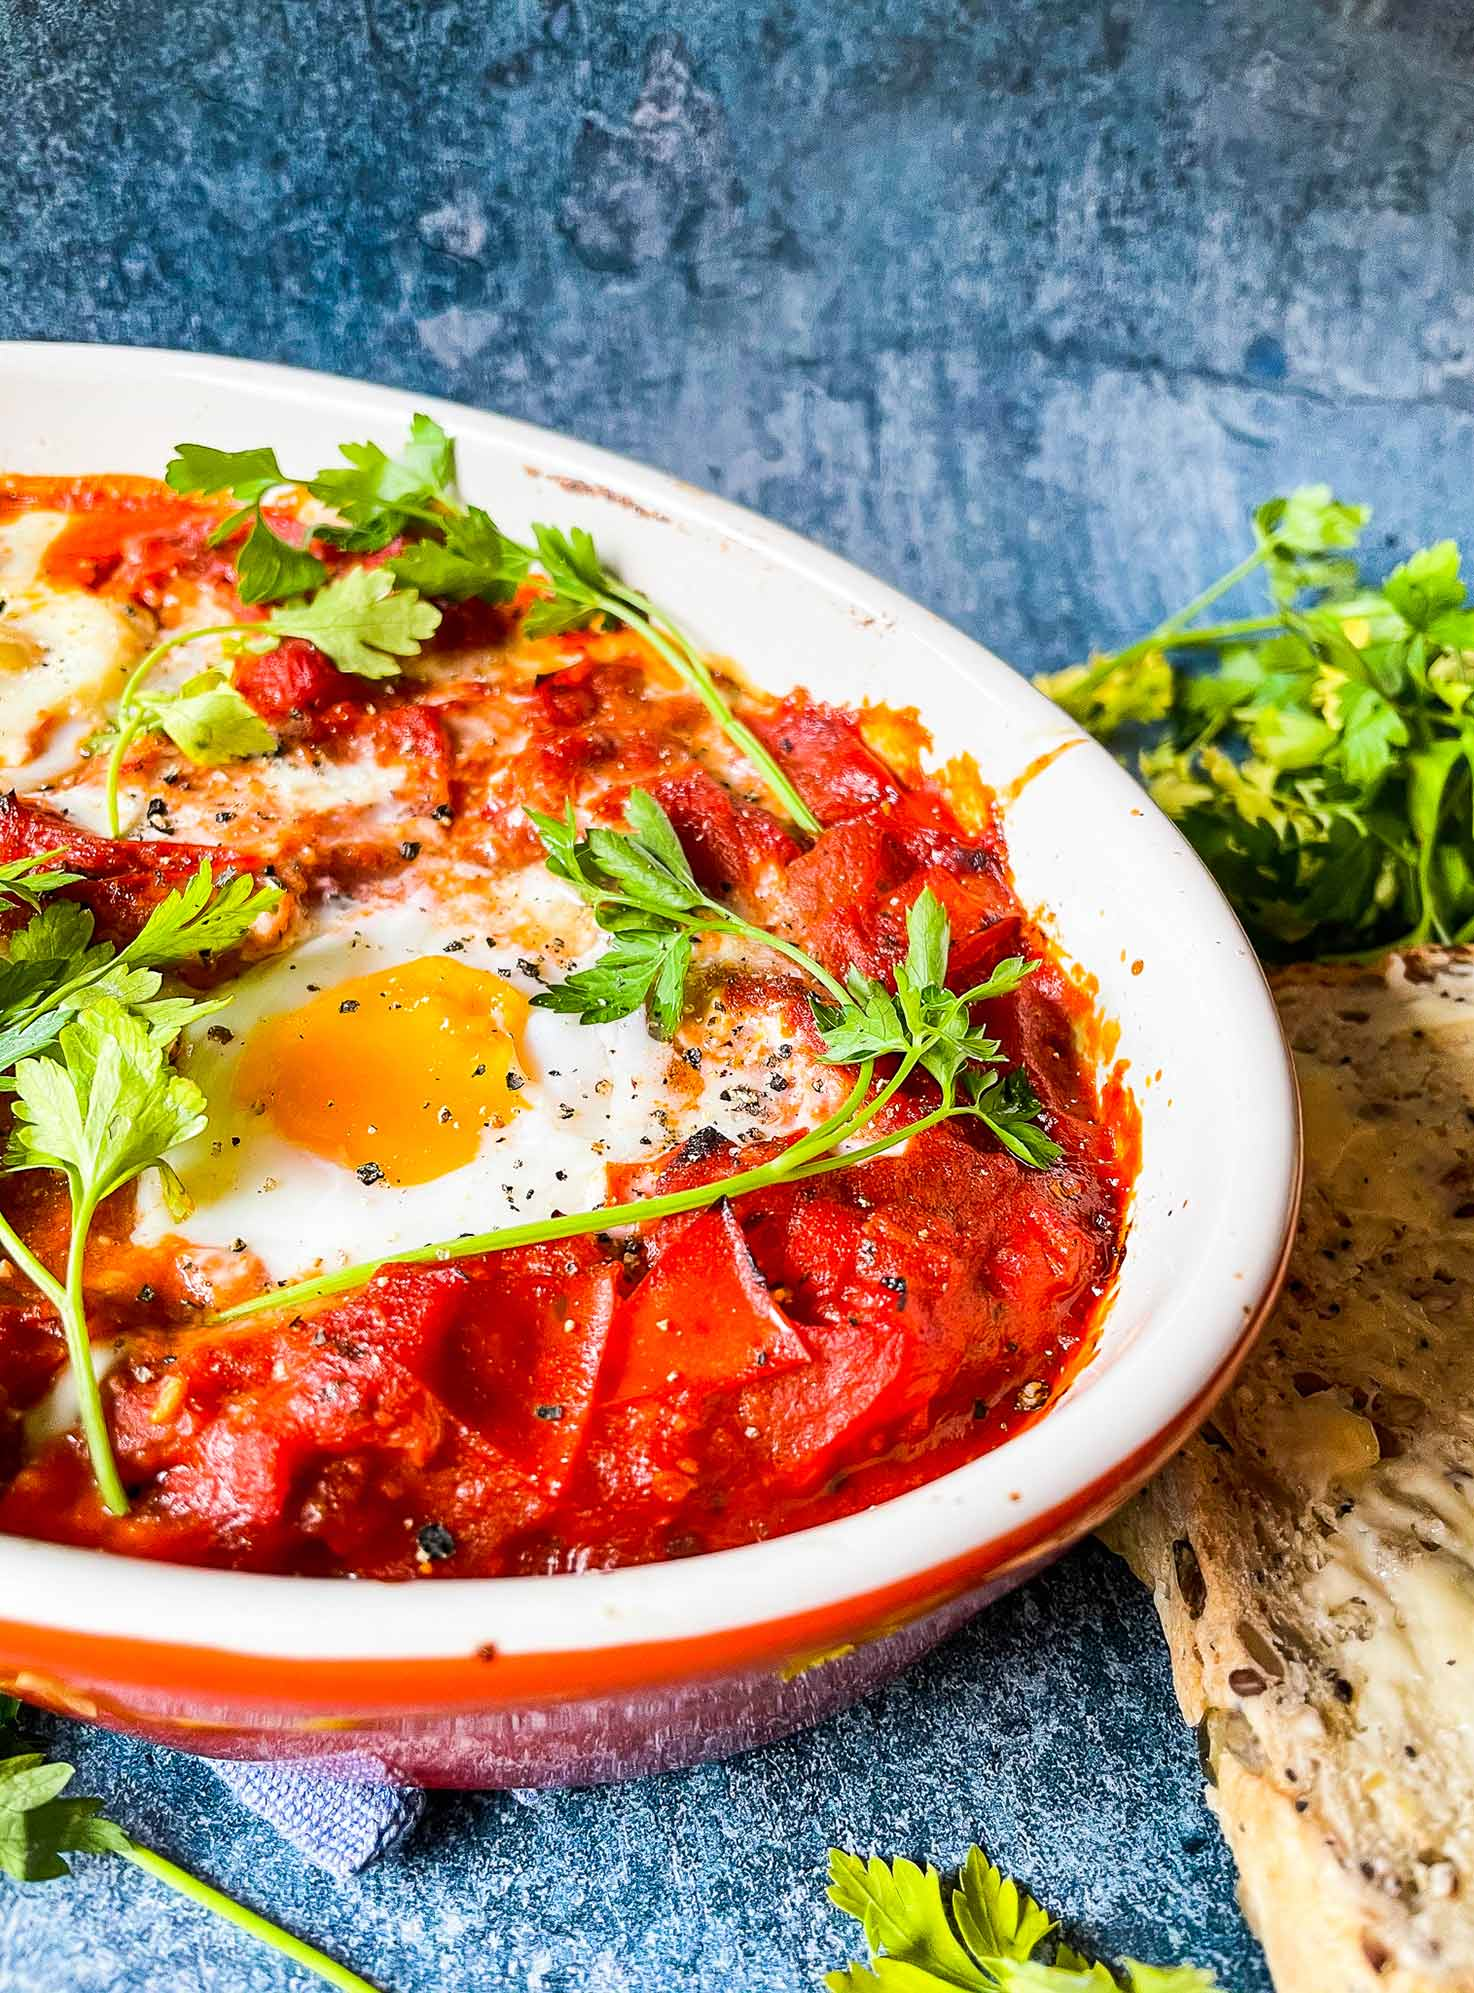 Vegetarian Shakshuka is served on the blue table with parsley and bread #eggs #red onion | hurrythefoodup.com